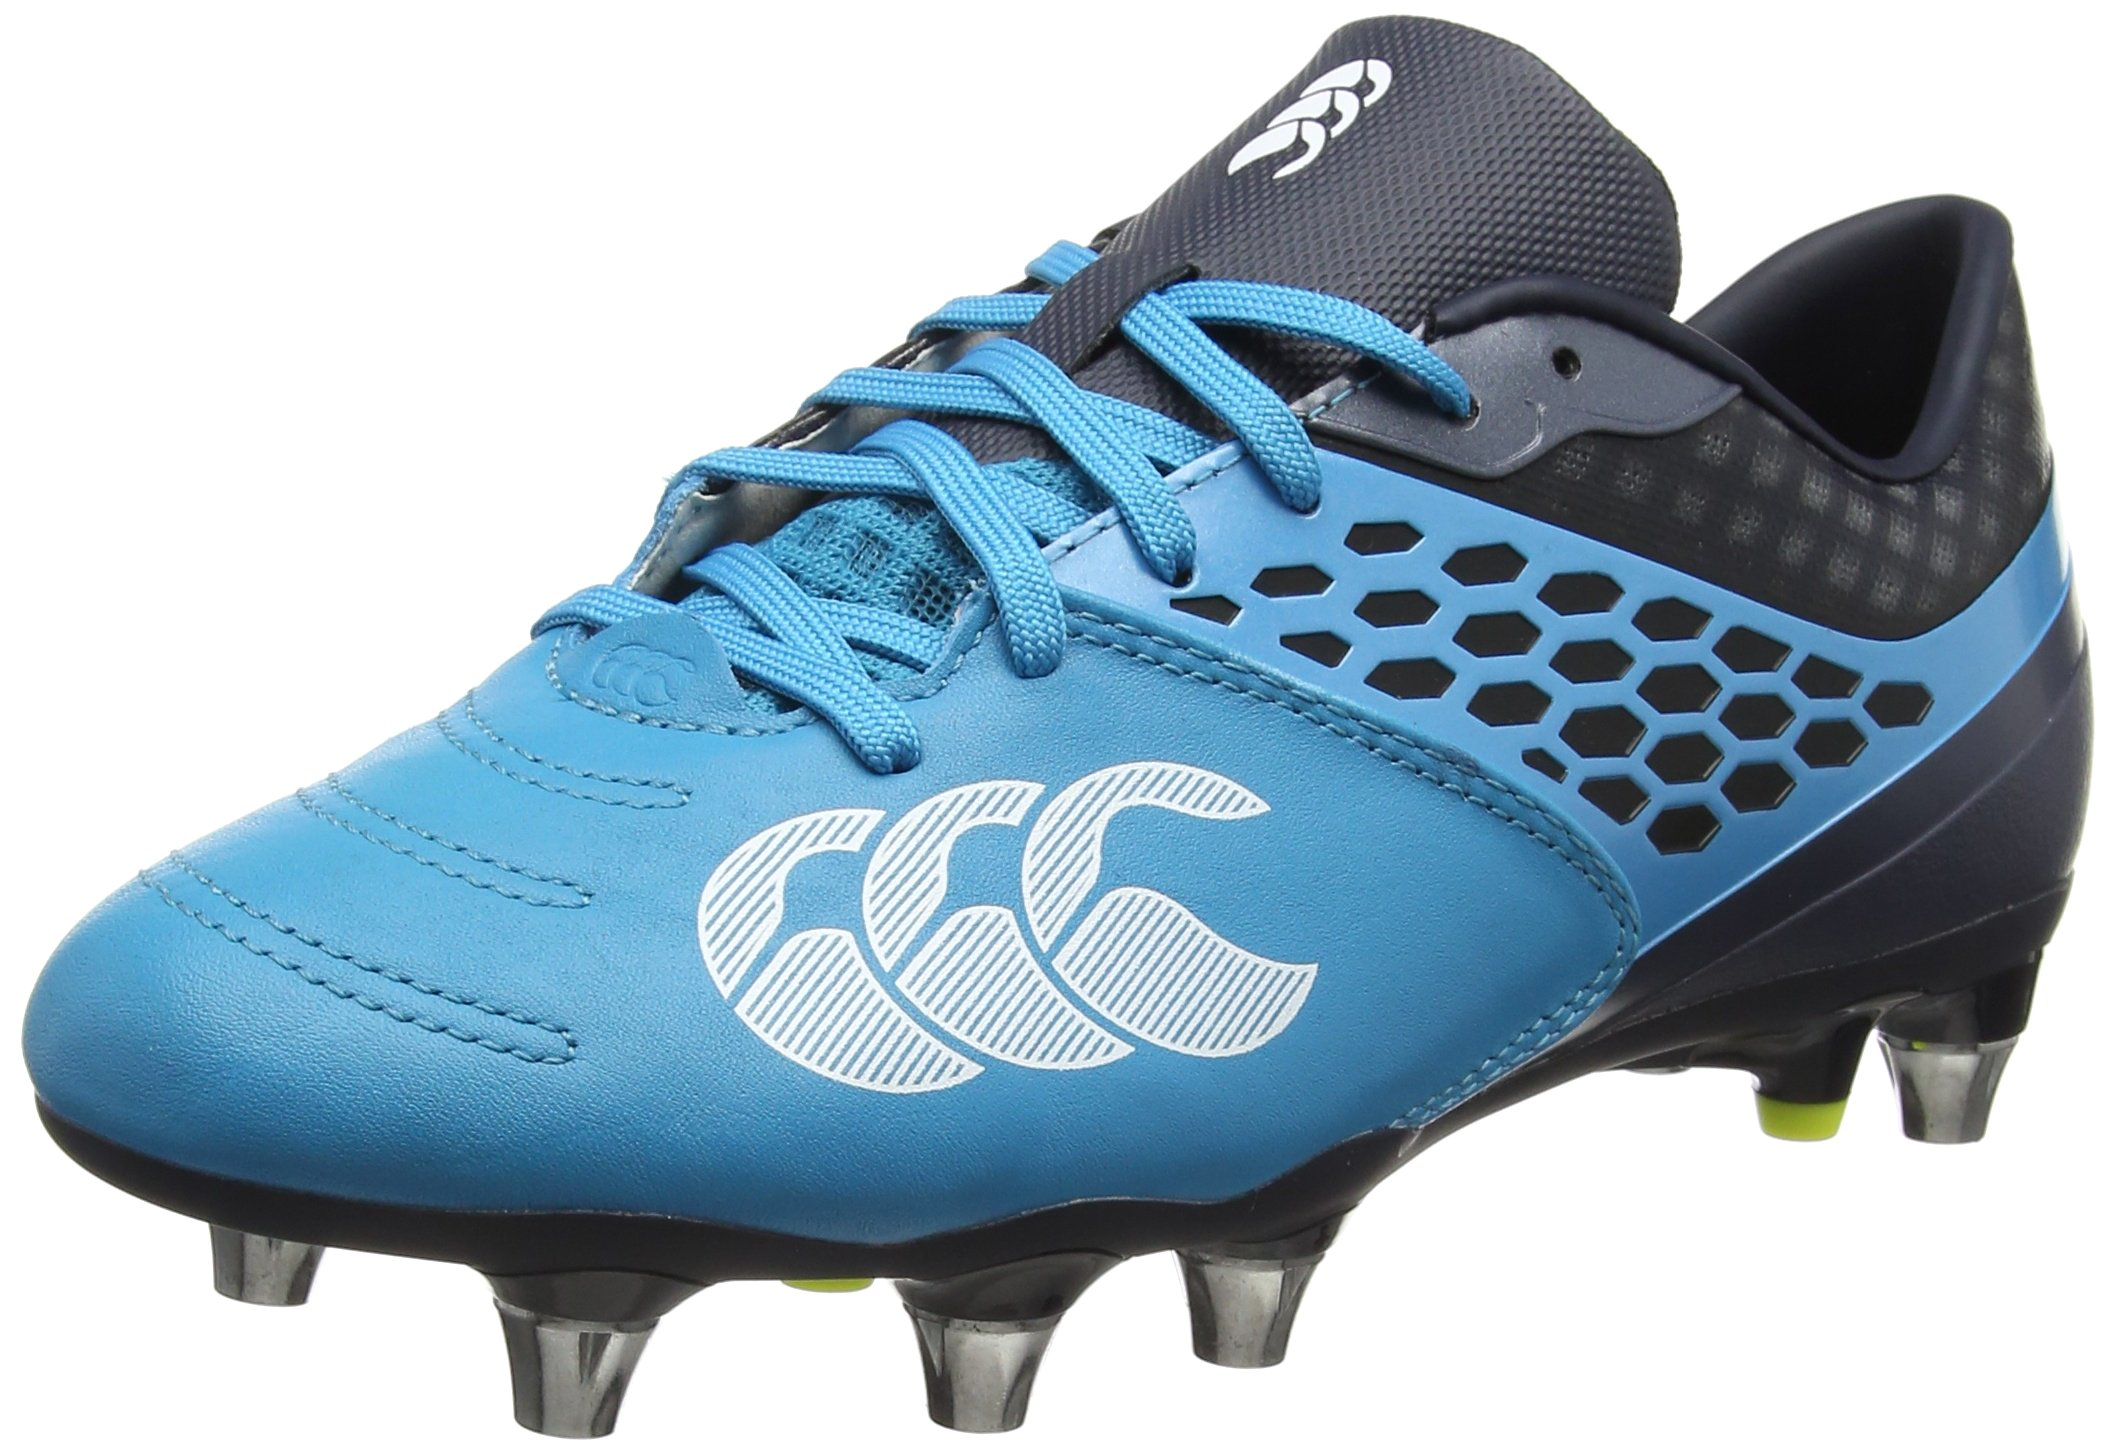 Canterbury Phoenix 2.0 Elite Men's Rugby Boots, Natural, US12